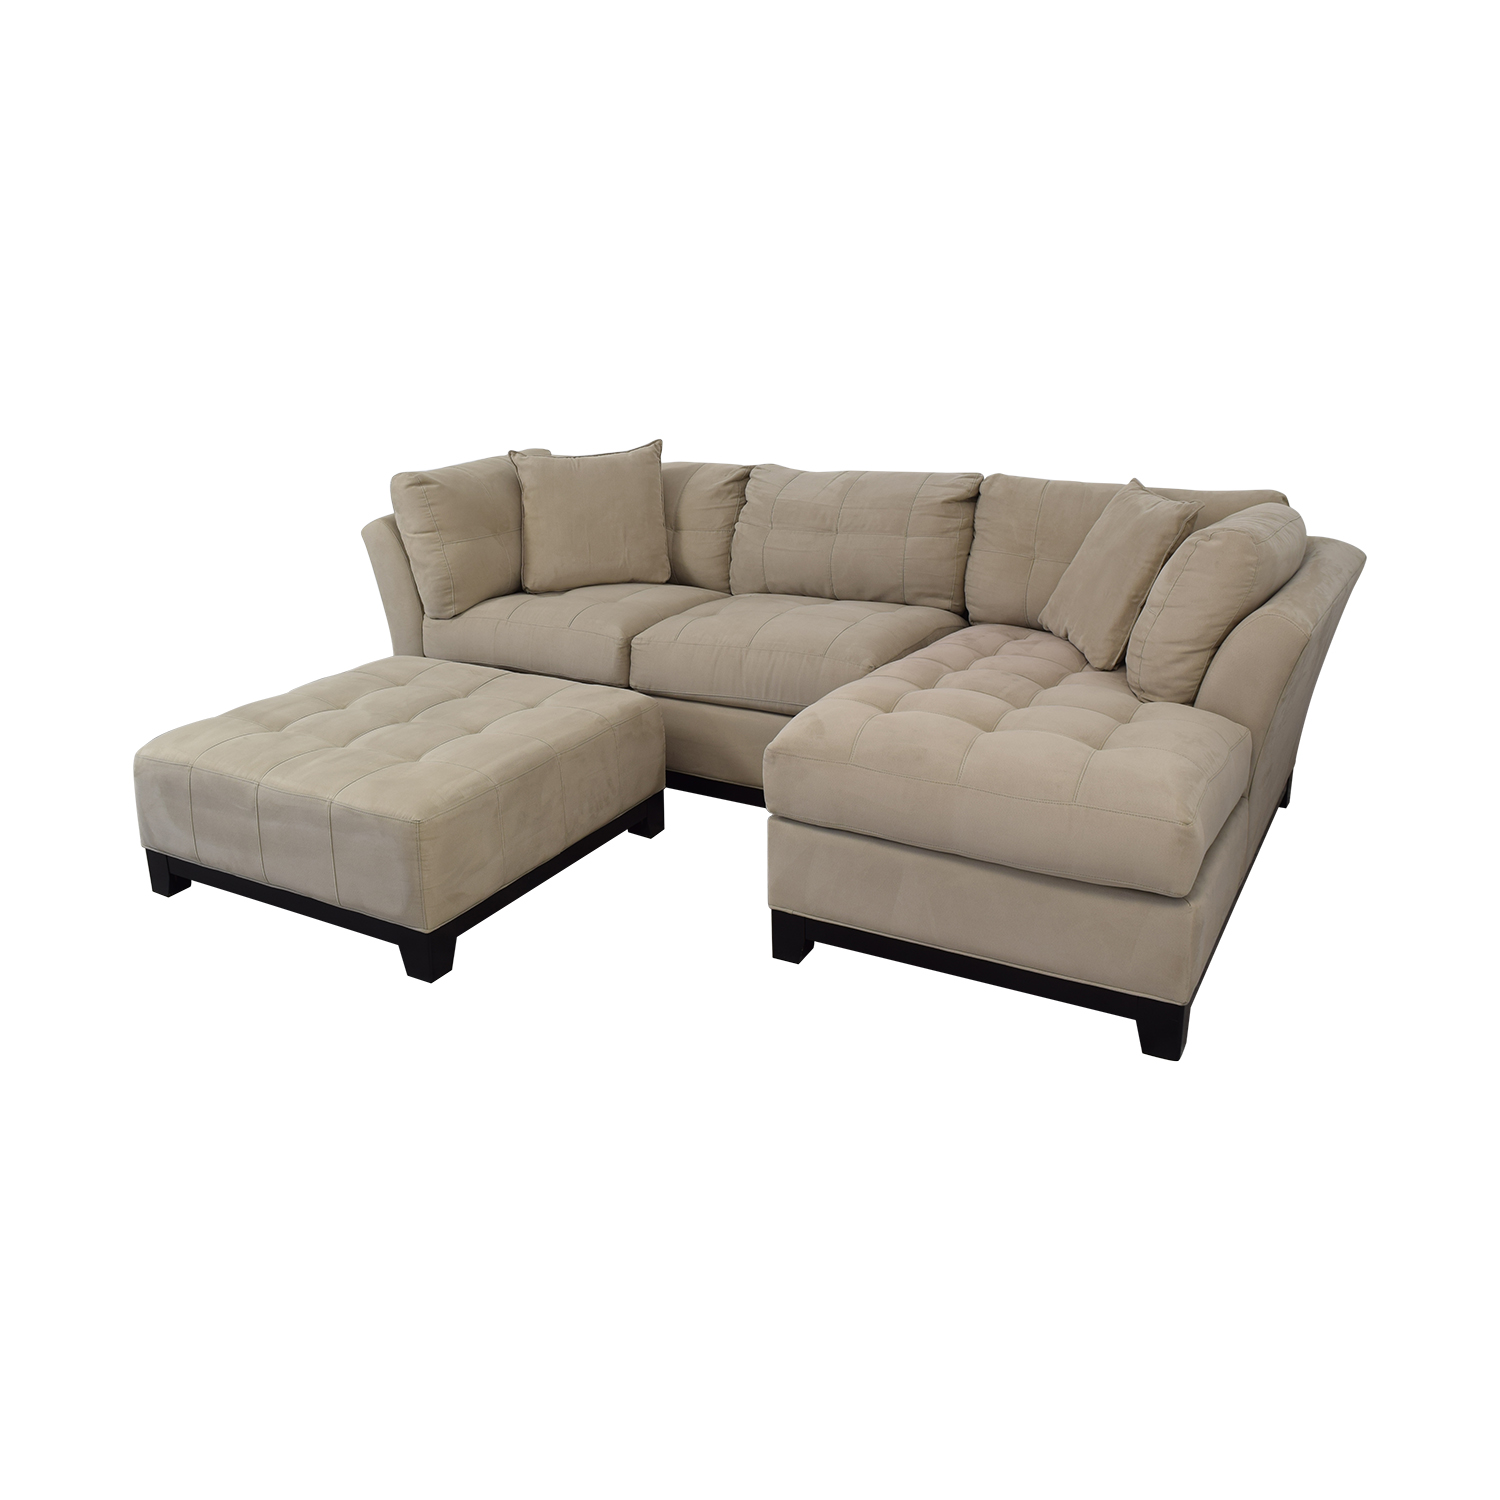 Raymour & Flanigan Raymour & Flanigan Sectional Sofa with Chaise and Cocktail Ottoman second hand